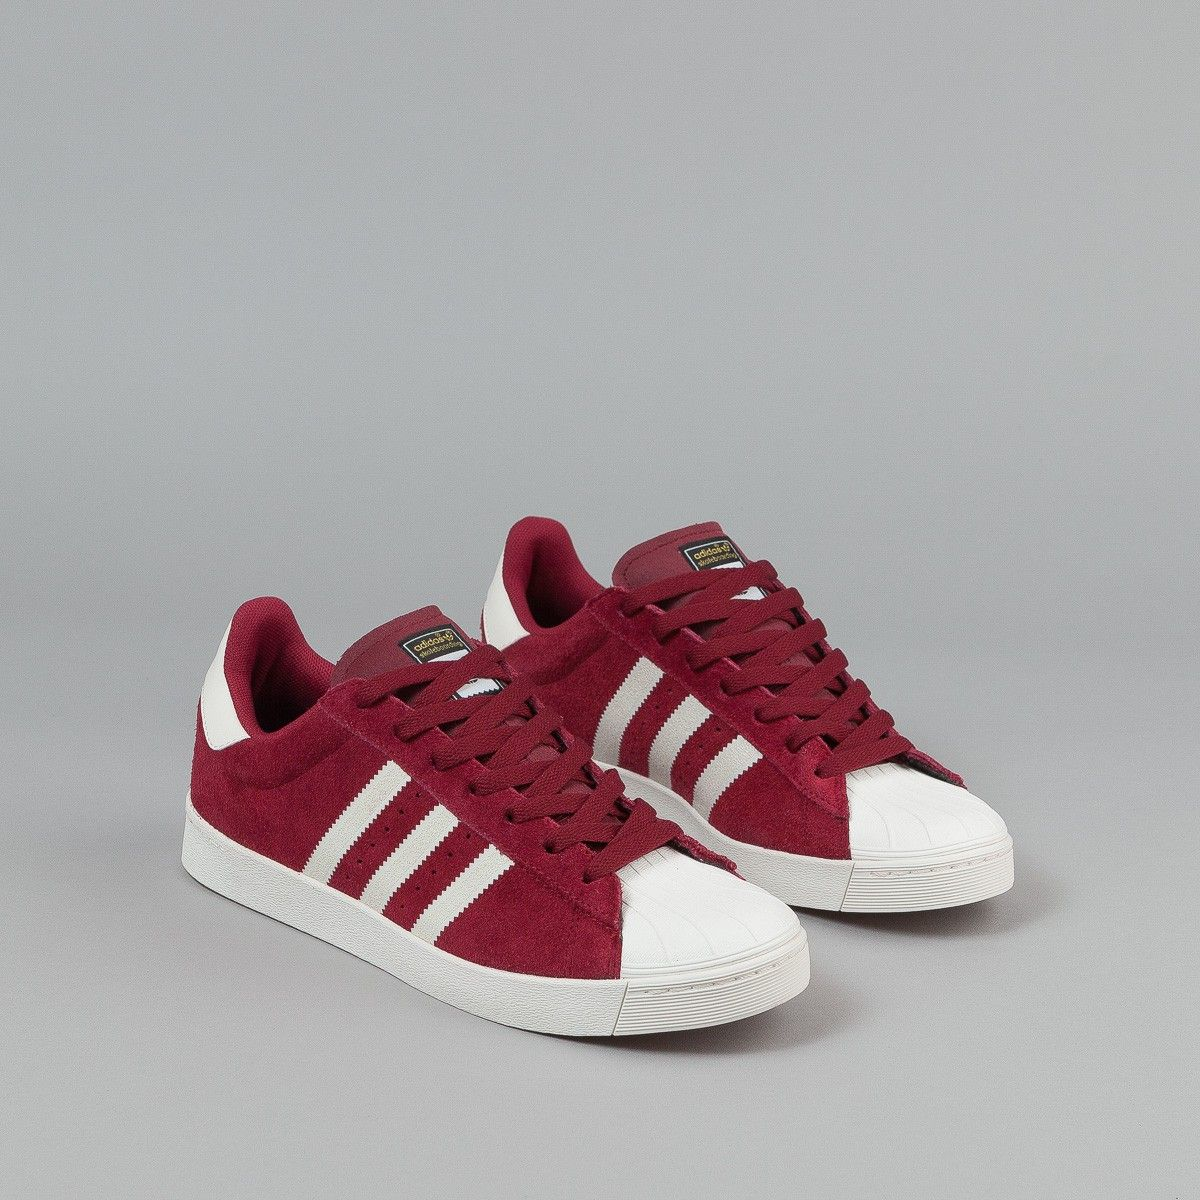 SNOW, SKATE and STREET :: Cheap Adidas Superstar Vulc ADV